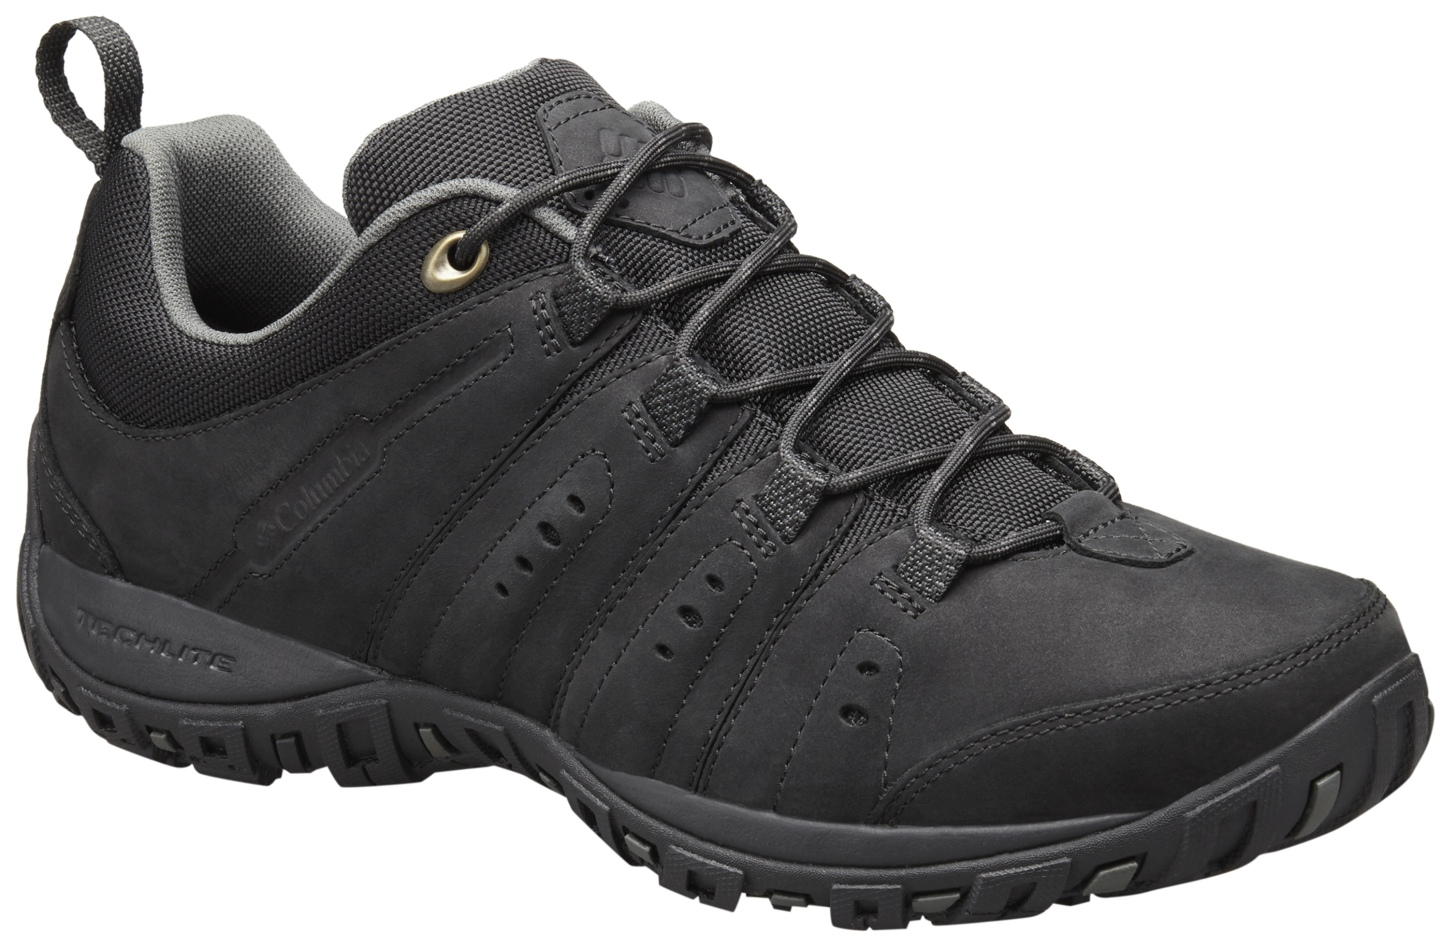 Columbia Men's Peakfreak Nomad Plus Shoes Black, Grill-30